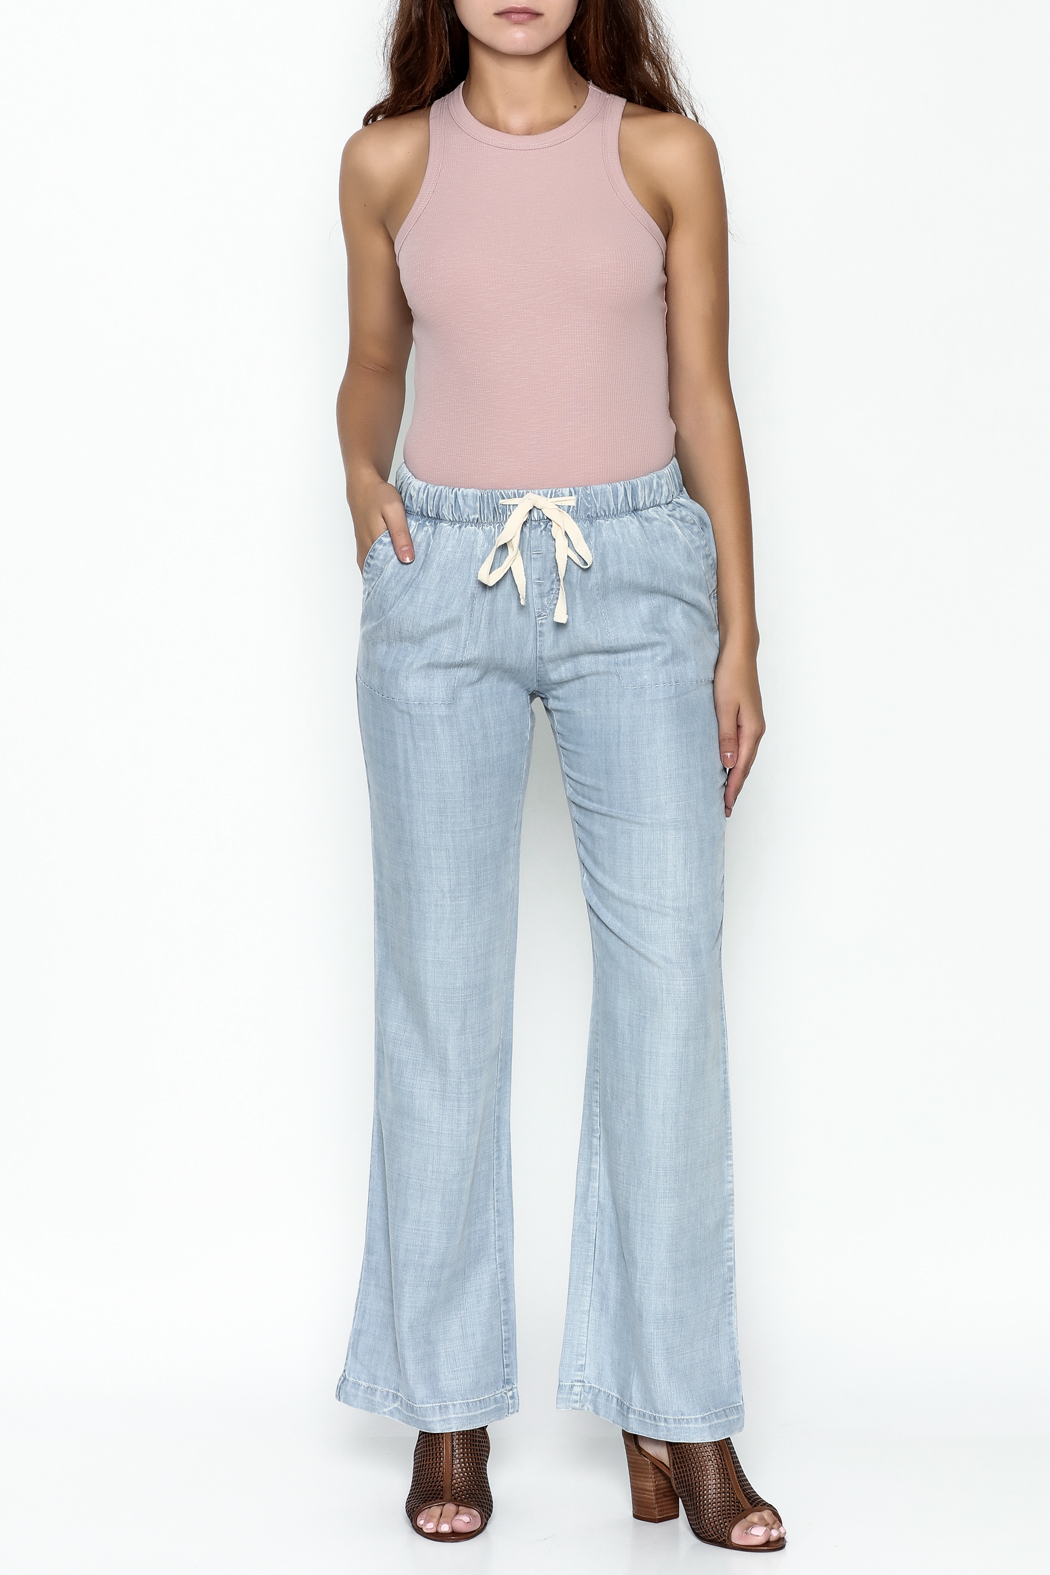 Laju Tencel Flare Jeans - Side Cropped Image